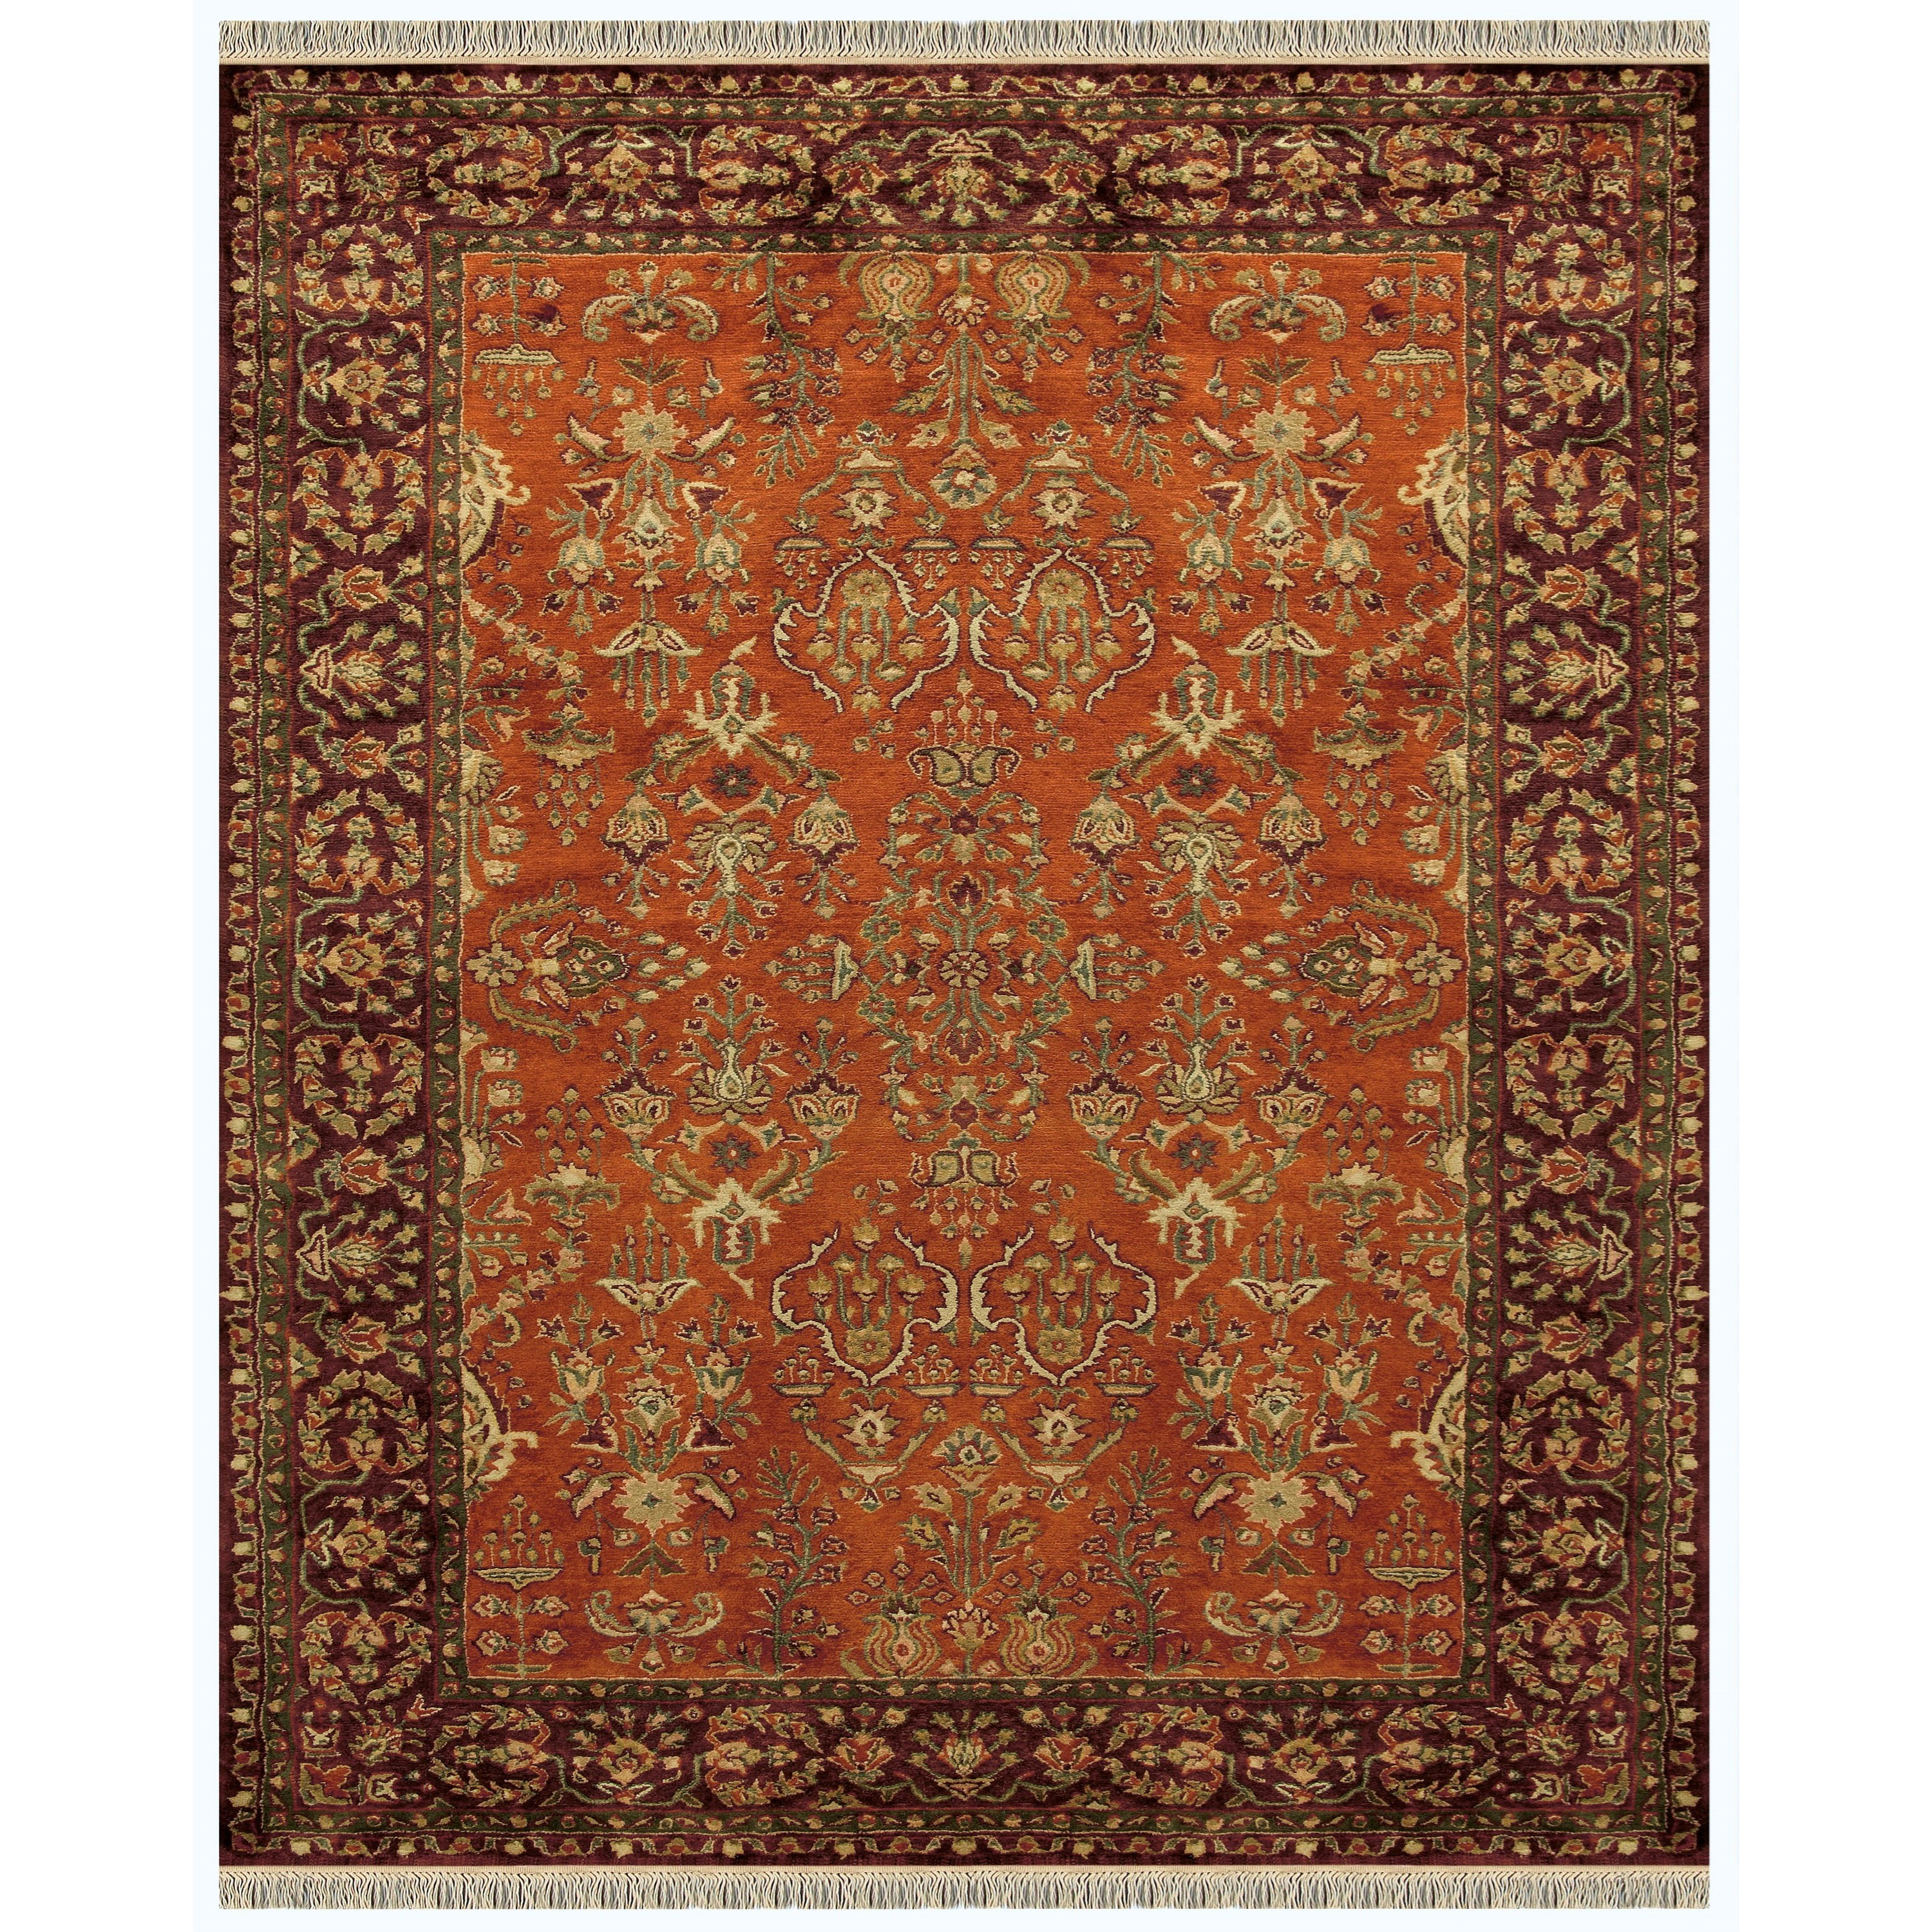 Amore Cinnamon/Plum 8' X 11' Area Rug by Feizy Rugs at Sprintz Furniture